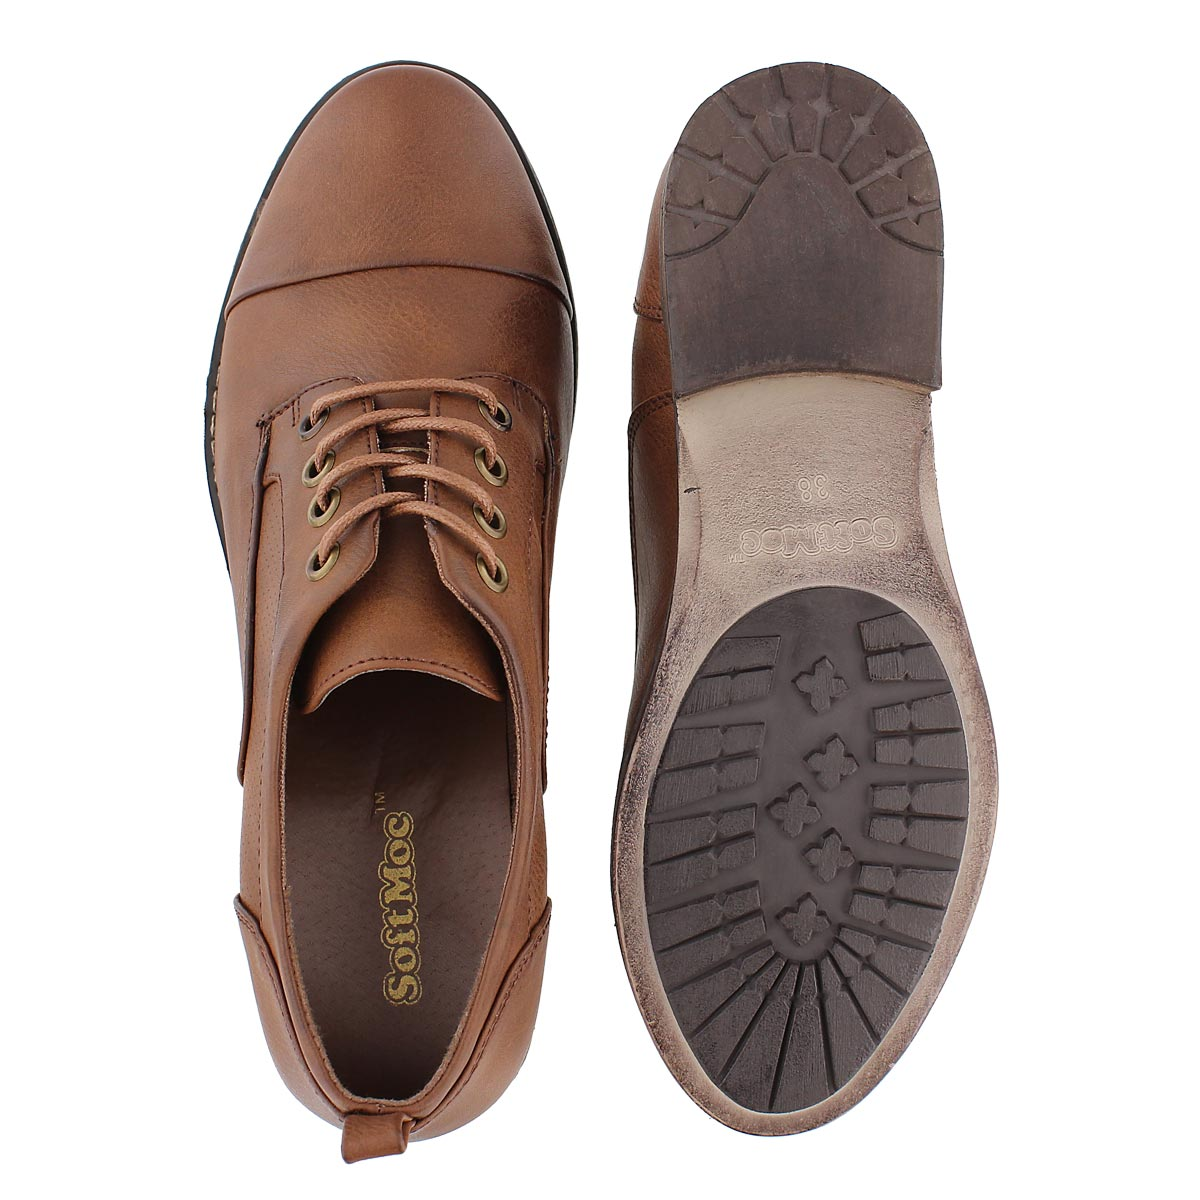 Lds Besilia rust lace up oxford